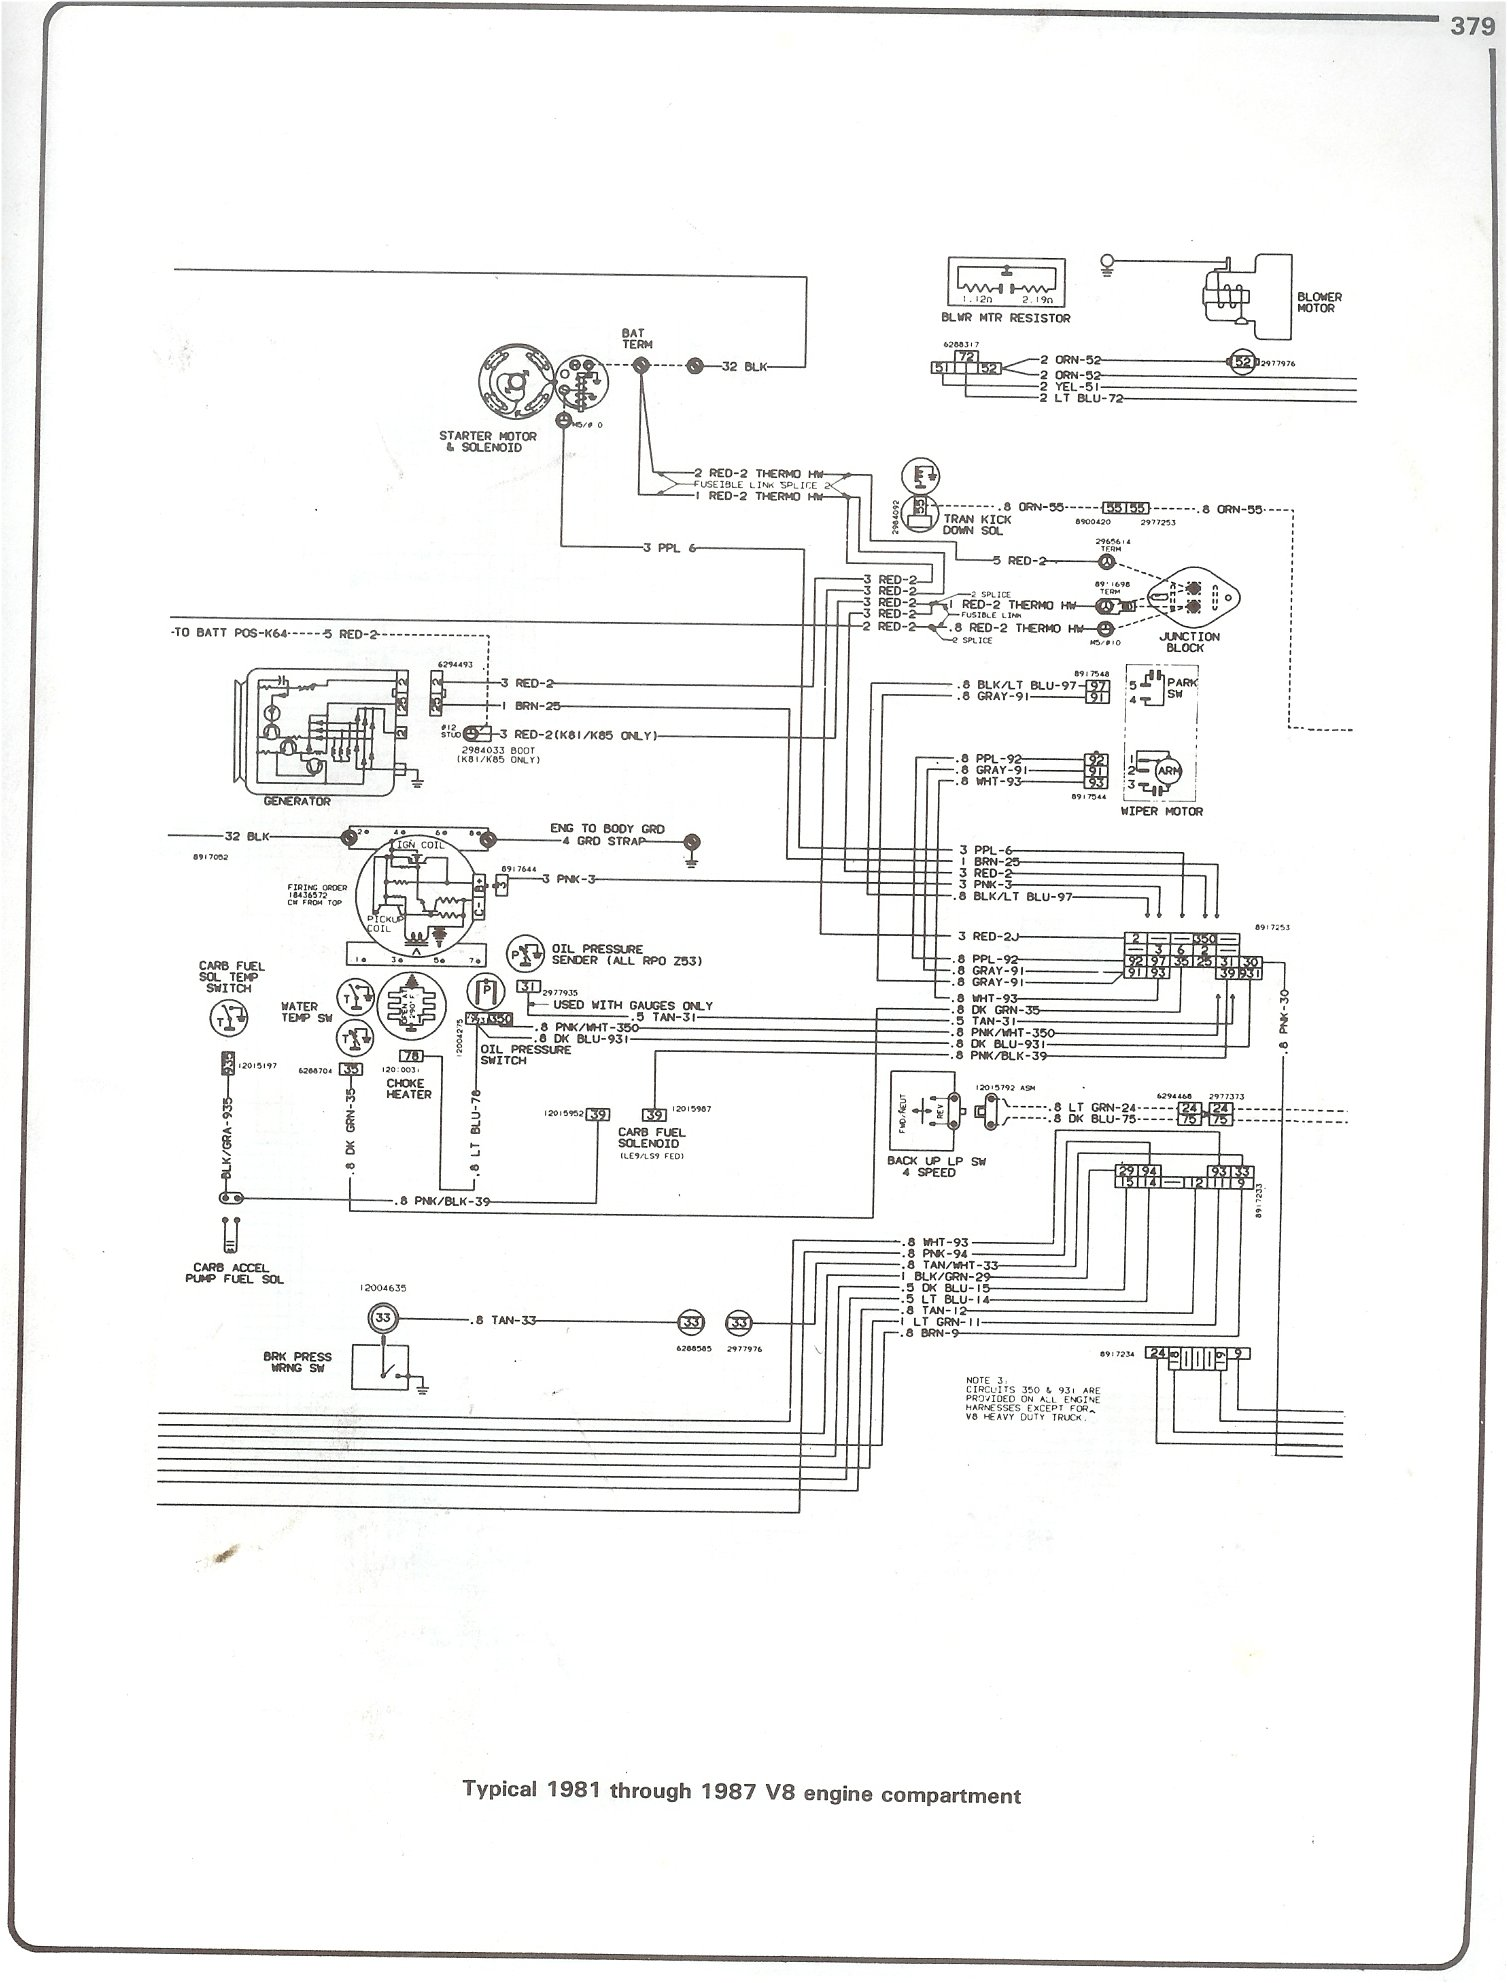 hight resolution of complete 73 87 wiring diagrams 2001 suburban wiring diagram 81 87 v8 engine compartment